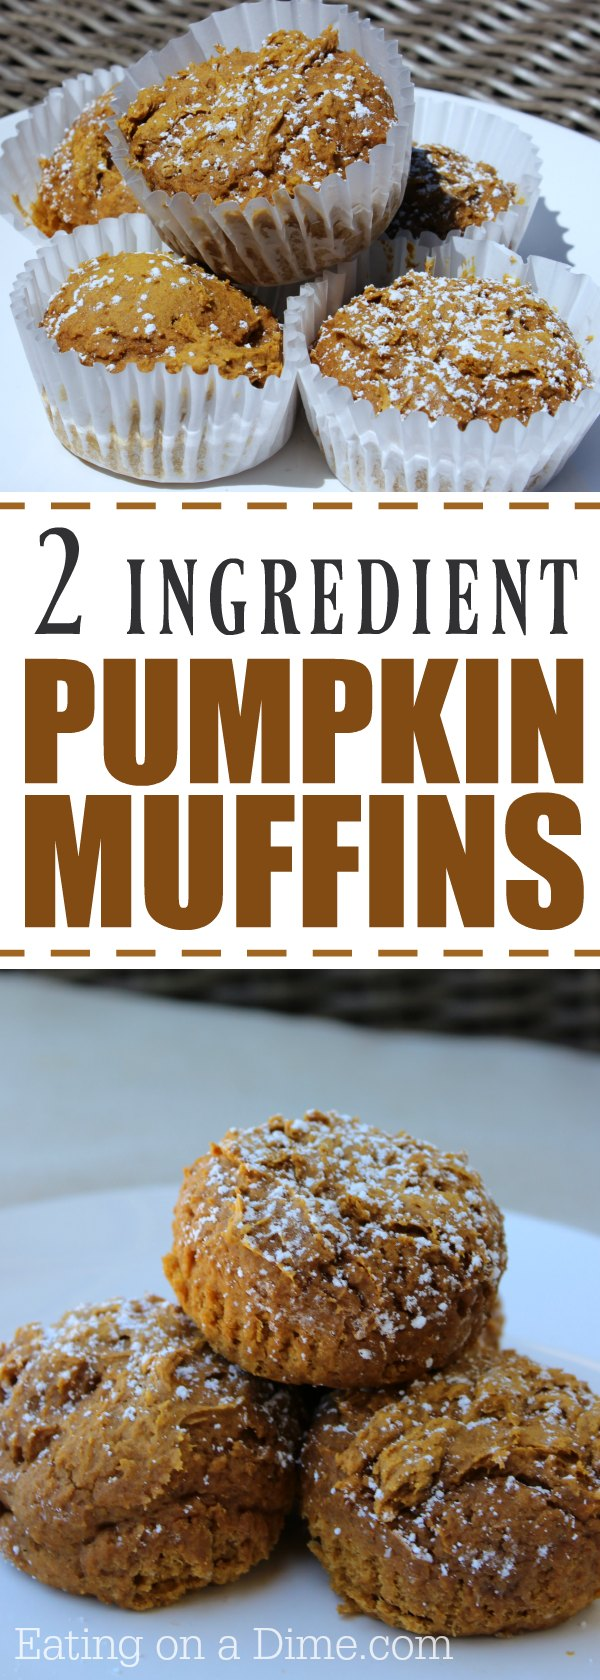 Muffin Recipe With Pumpkin And Cake Mix